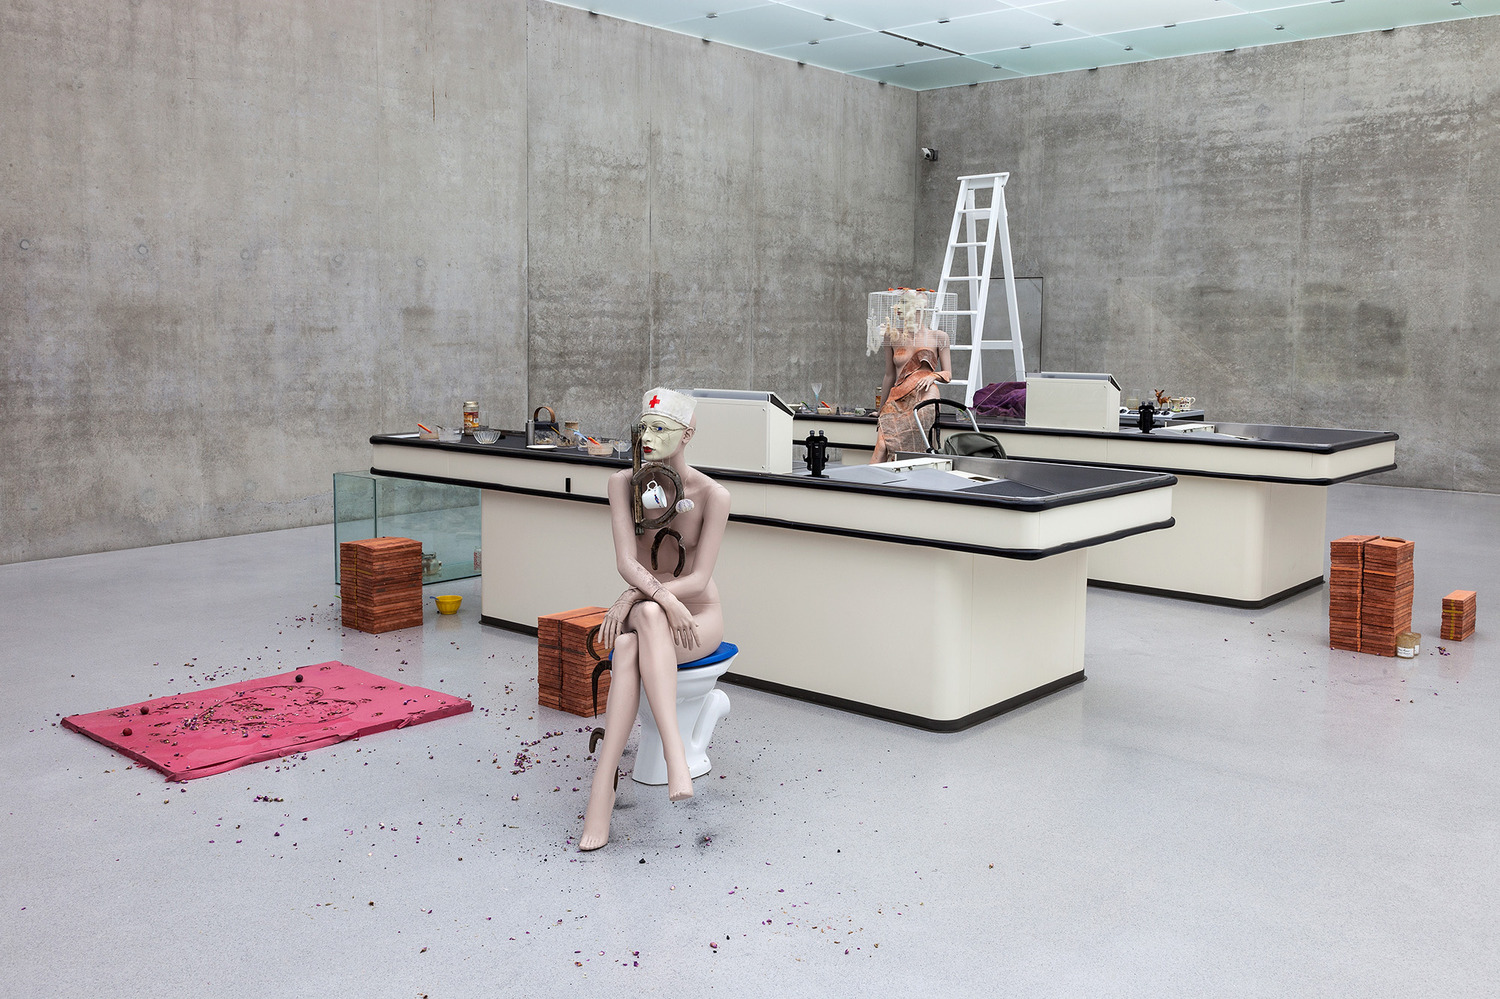 I Give You All My Money, 2008, Mixed media, Dimensions variable, Installation view 'Love is Colder than Capital: An Exhibition about the value of feelings', Kunsthaus Bregenz, Bregenz, 2013